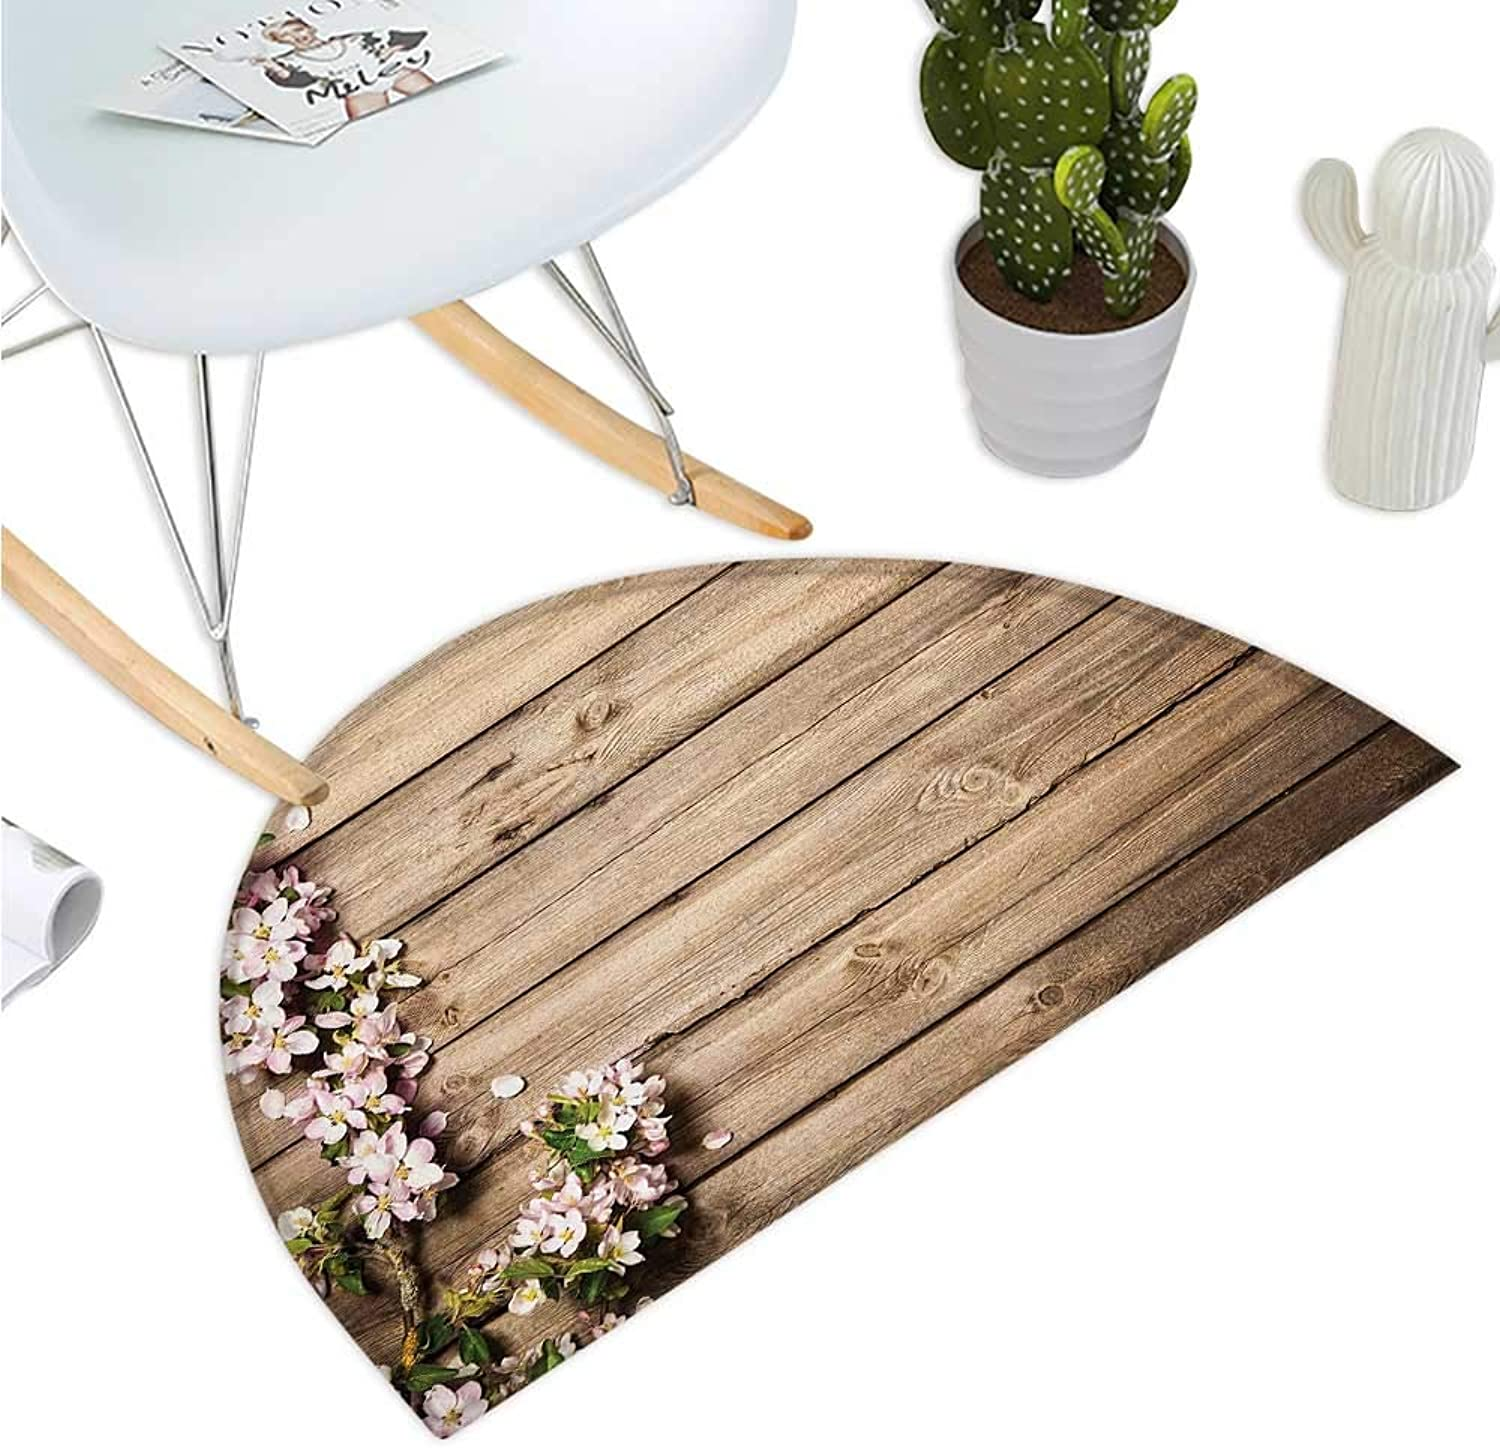 Rustic Semicircular Cushion Sweet Spring Flowering Tree Branch on Weathered Wooden Blooming Orchard Image Bathroom Mat H 39.3  xD 59  Pink Brown Green